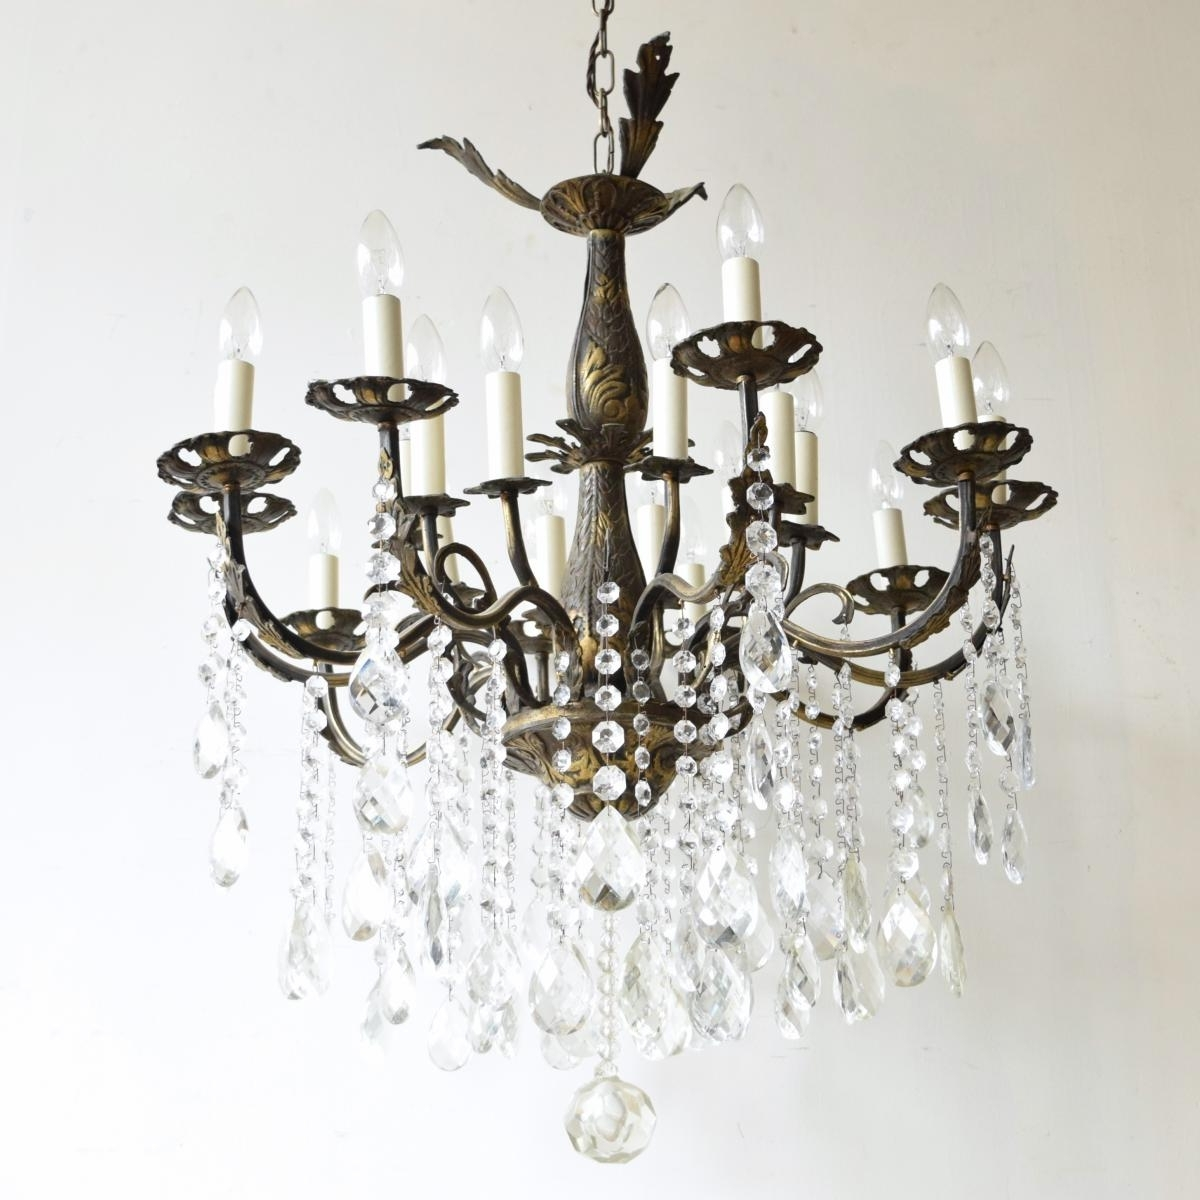 Popular Large Vintage French 16 Light Brass Chandelier For Sale At Pamono With Vintage French Chandeliers (View 16 of 20)